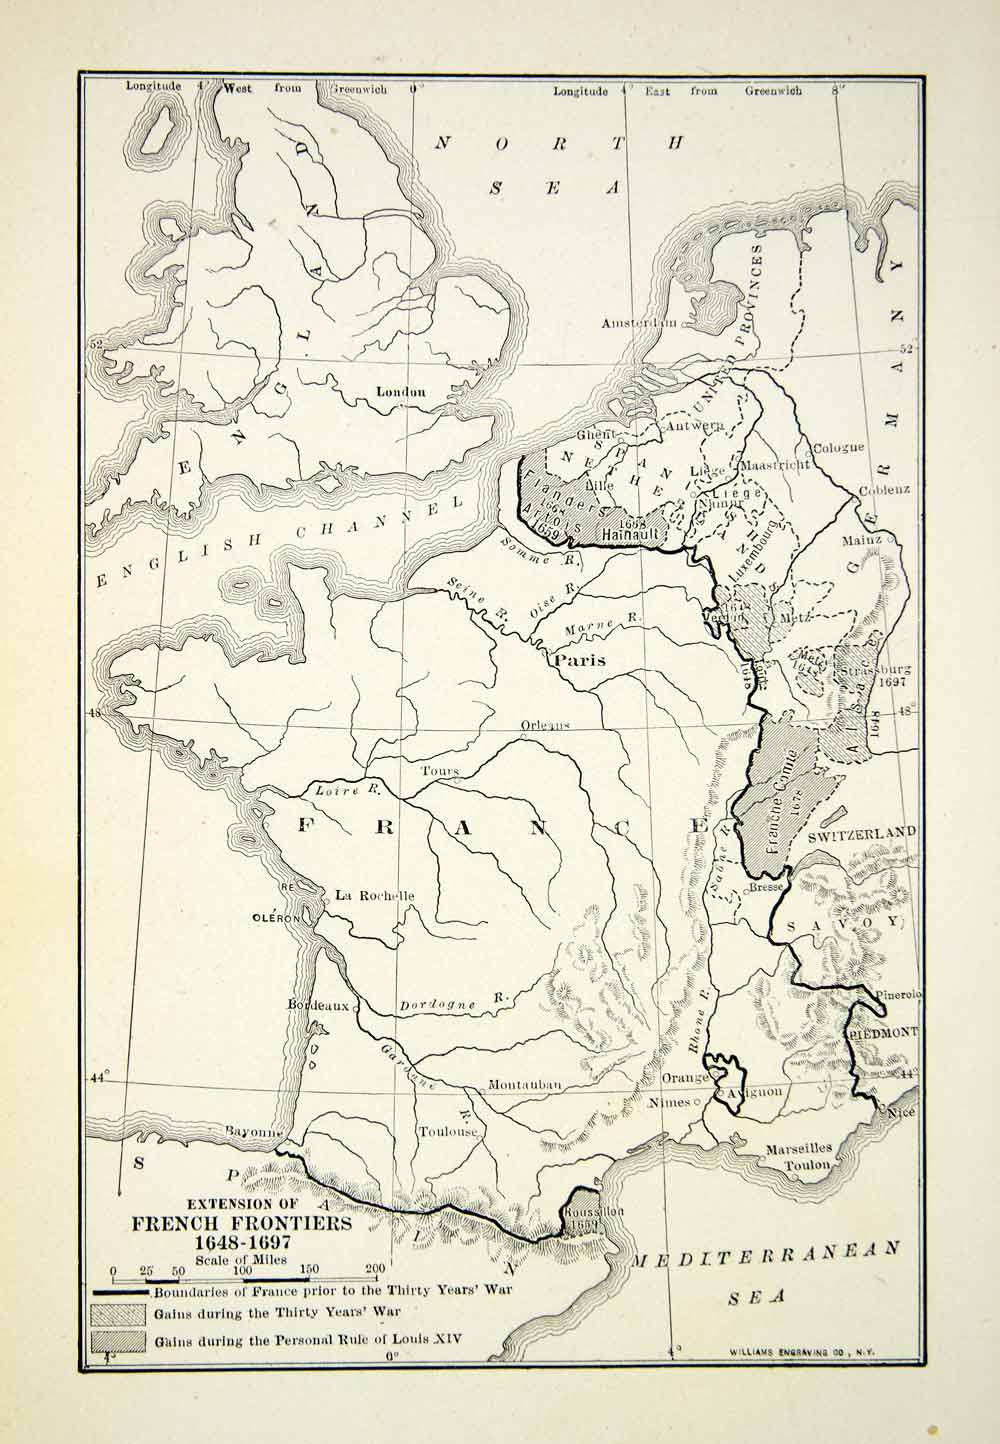 photograph regarding Printable Maps of England titled 1918 Print Map French Frontiers France Mediterranean Sea England Germany XEAA7